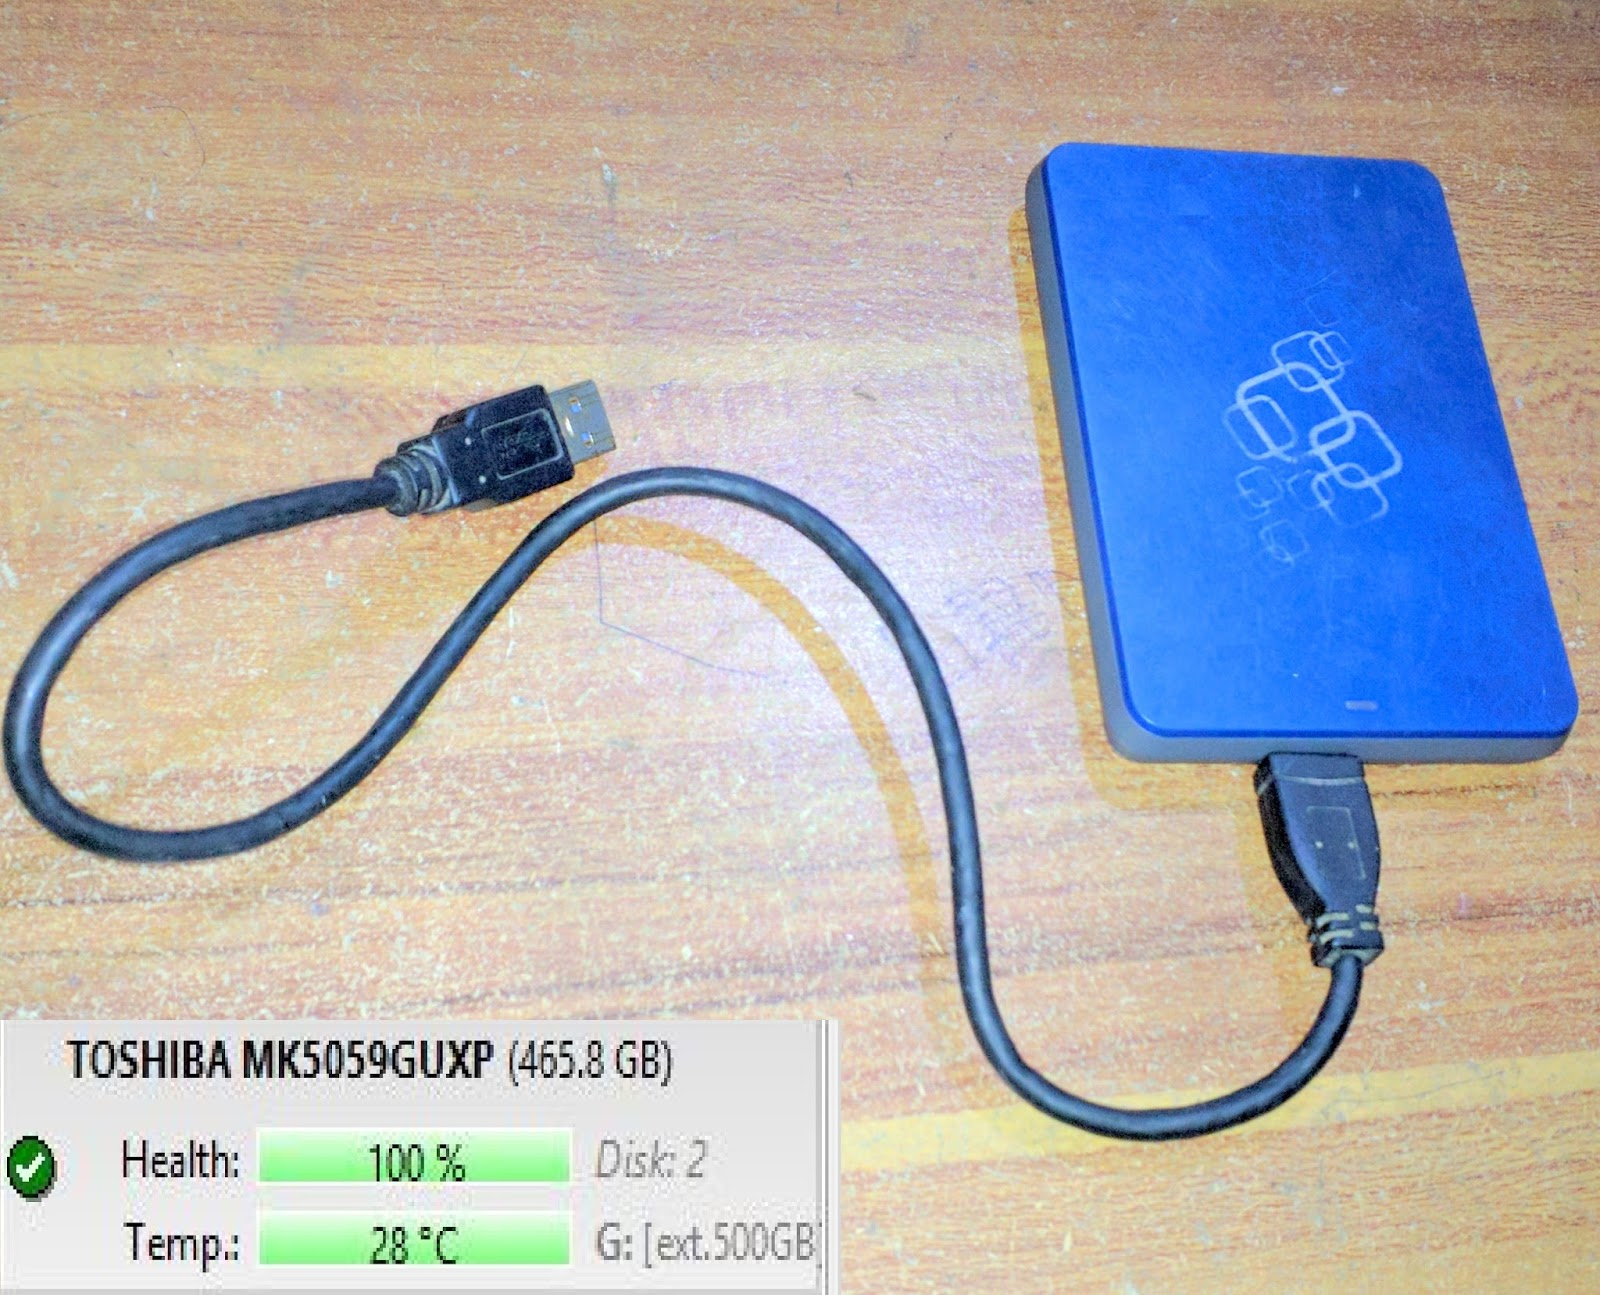 Jual Hardisk External 500GB USB 30